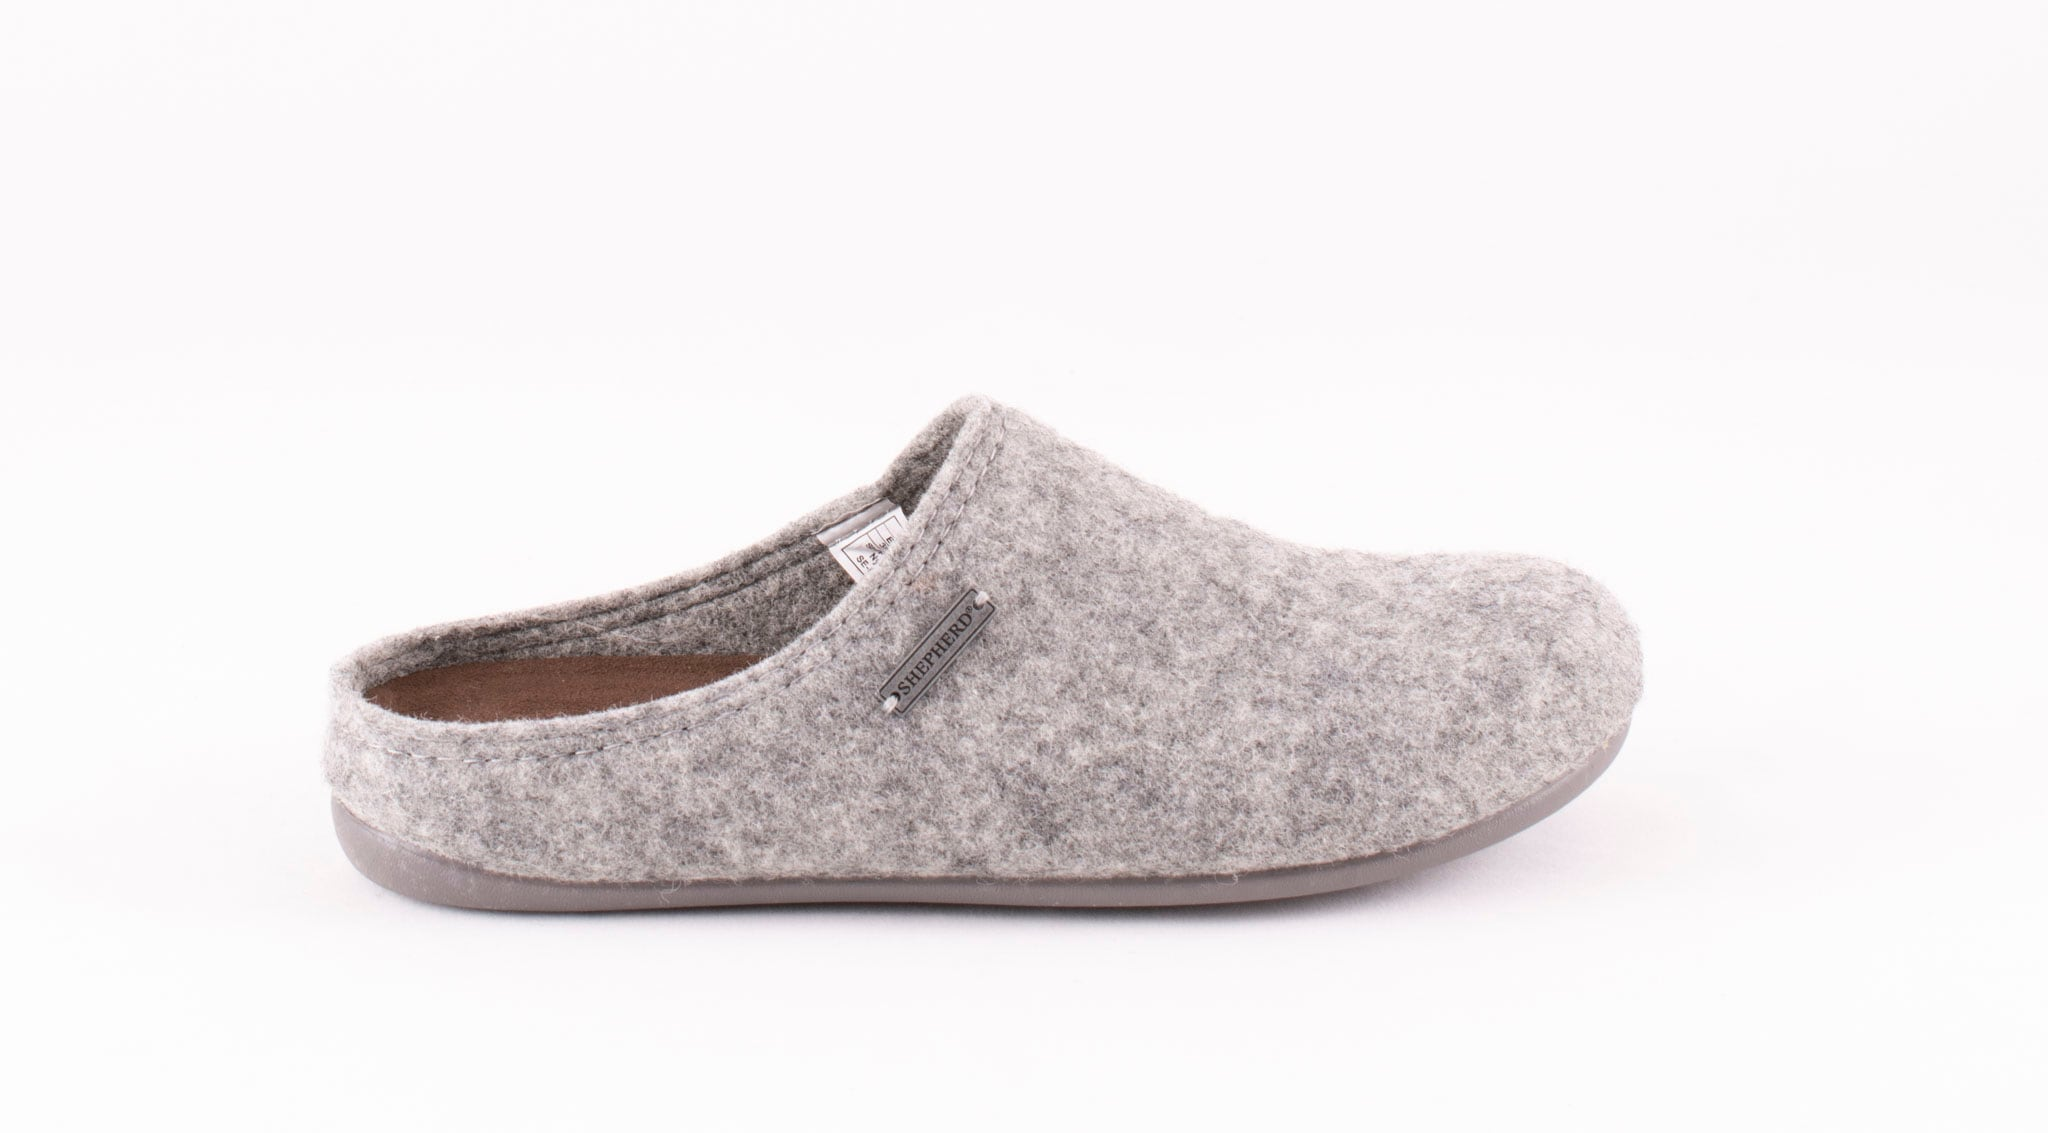 Cilla wool slippers